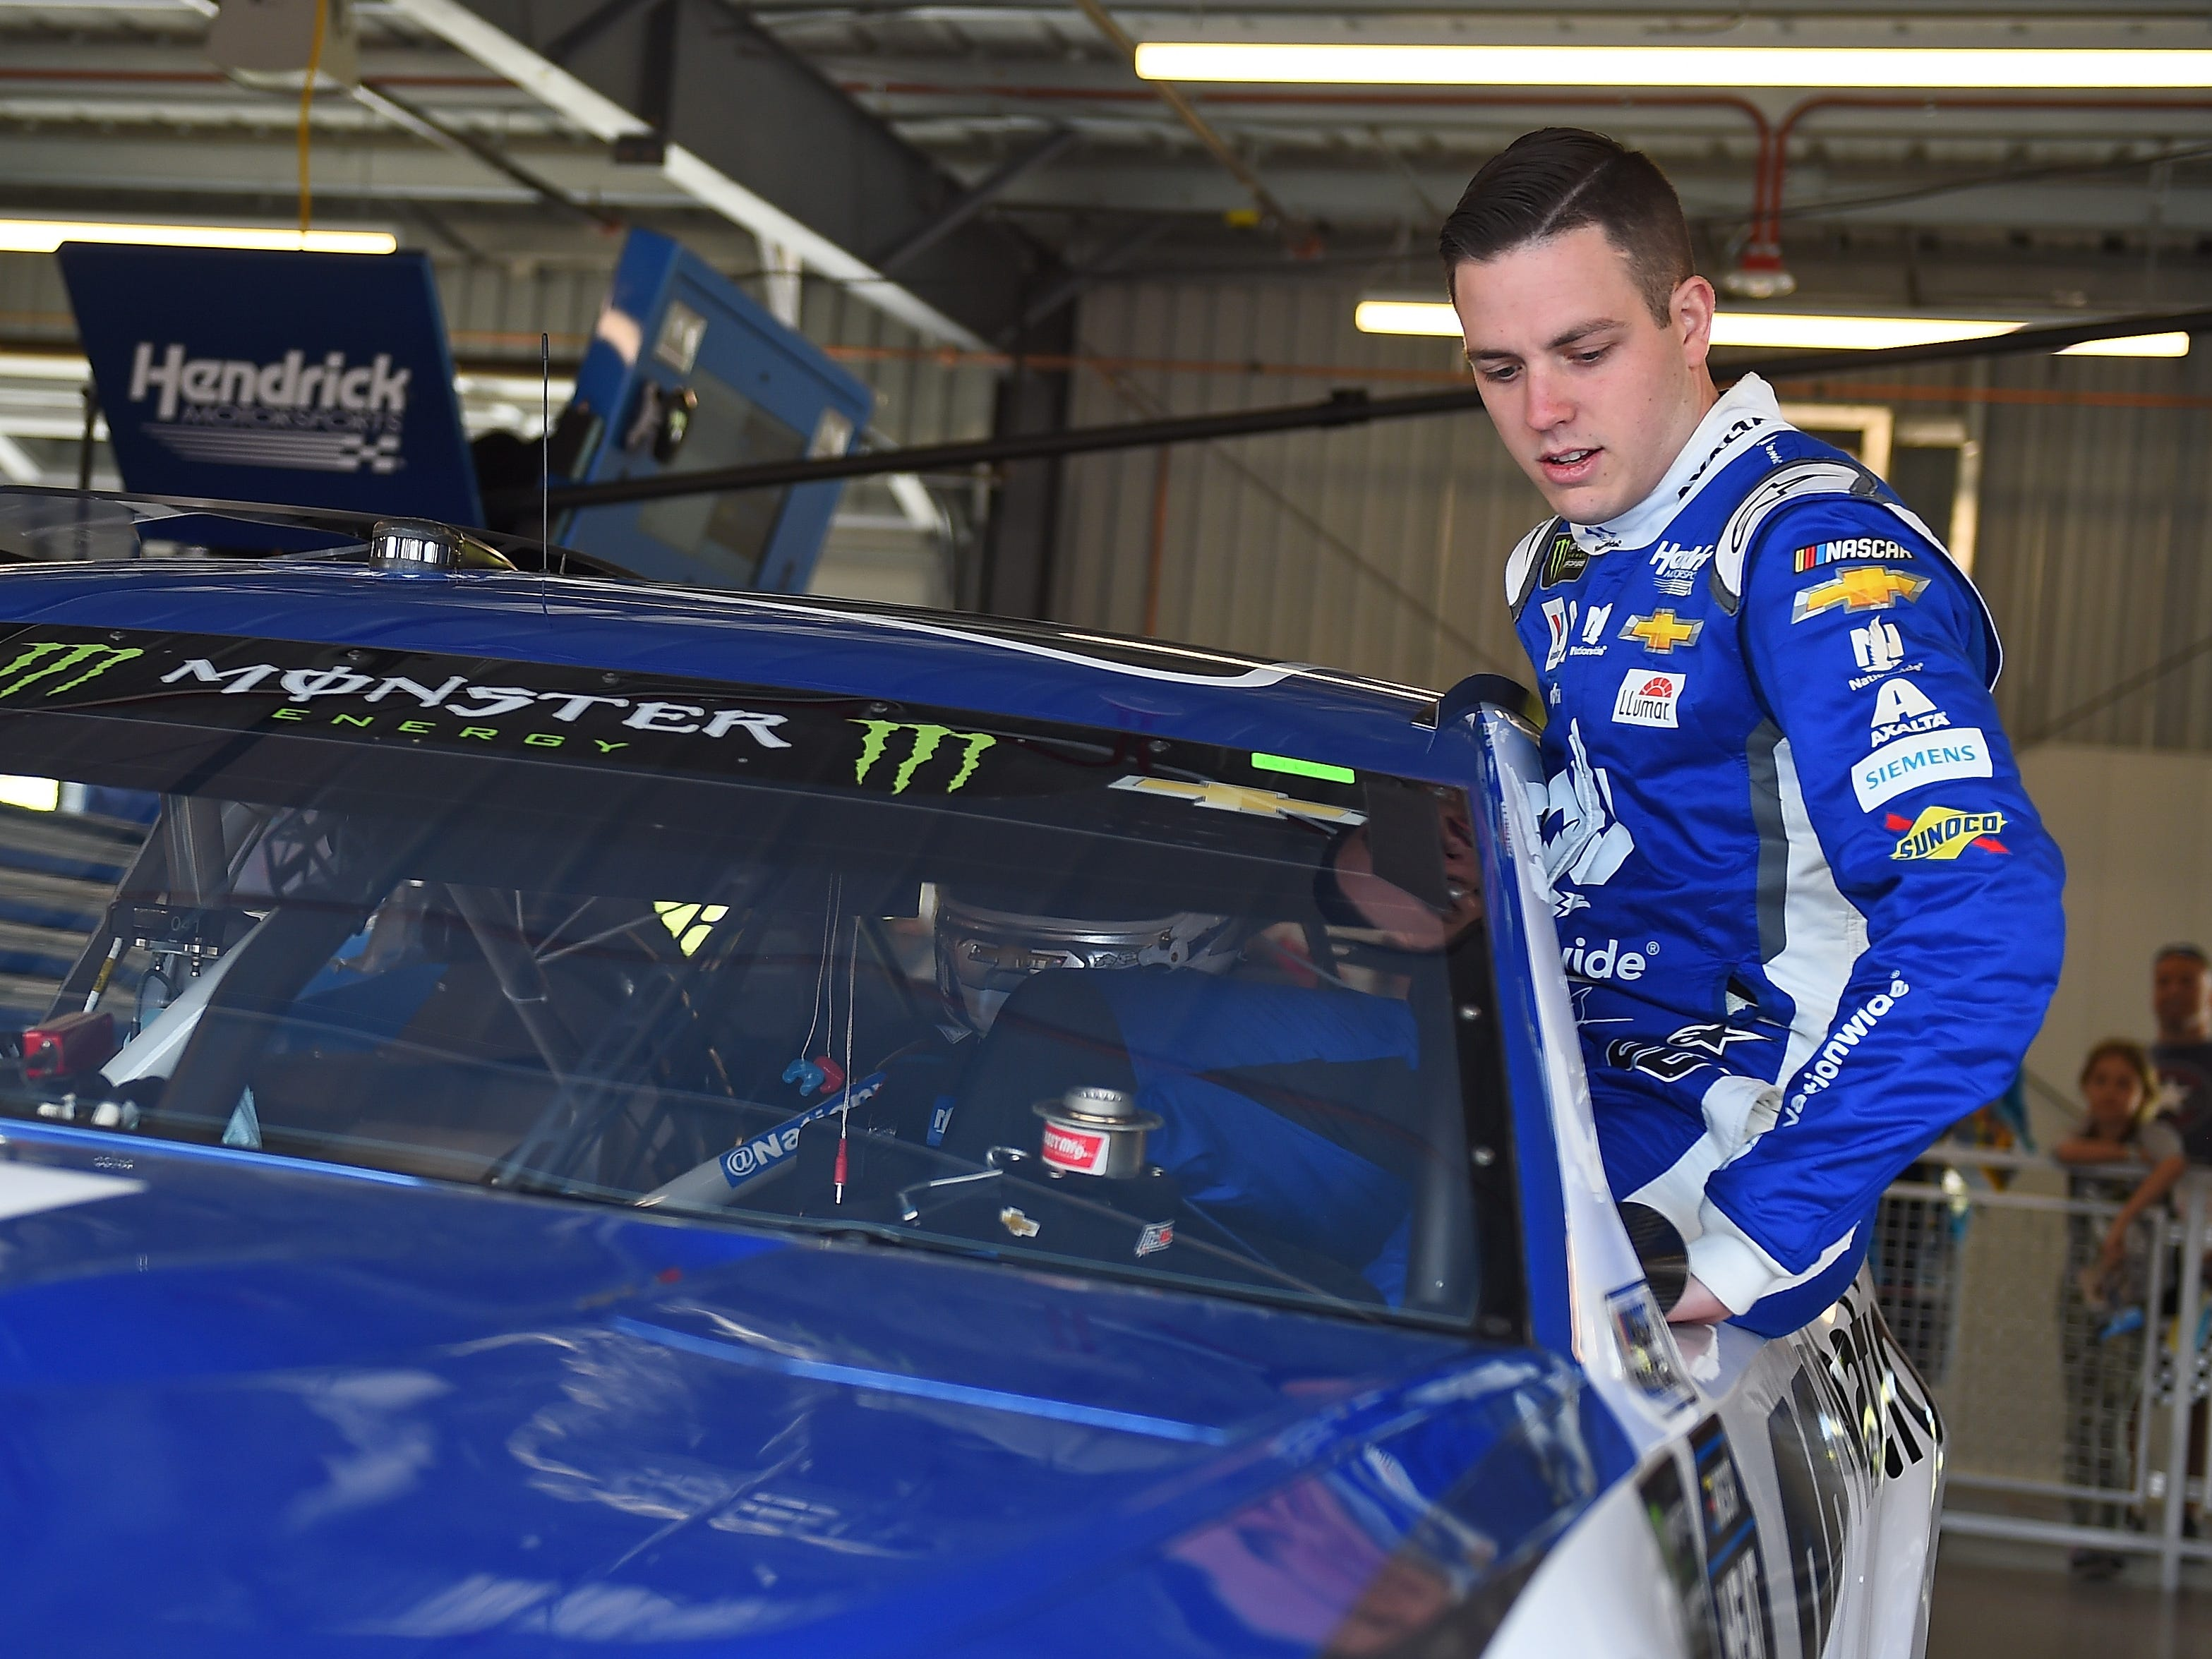 AVONDALE, AZ - MARCH 08:  Alex Bowman, driver of the #88 Nationwide Chevrolet, gets into his car during practice for the Monster Energy NASCAR Cup Series TicketGuardian 500 at ISM Raceway on March 8, 2019 in Avondale, Arizona.